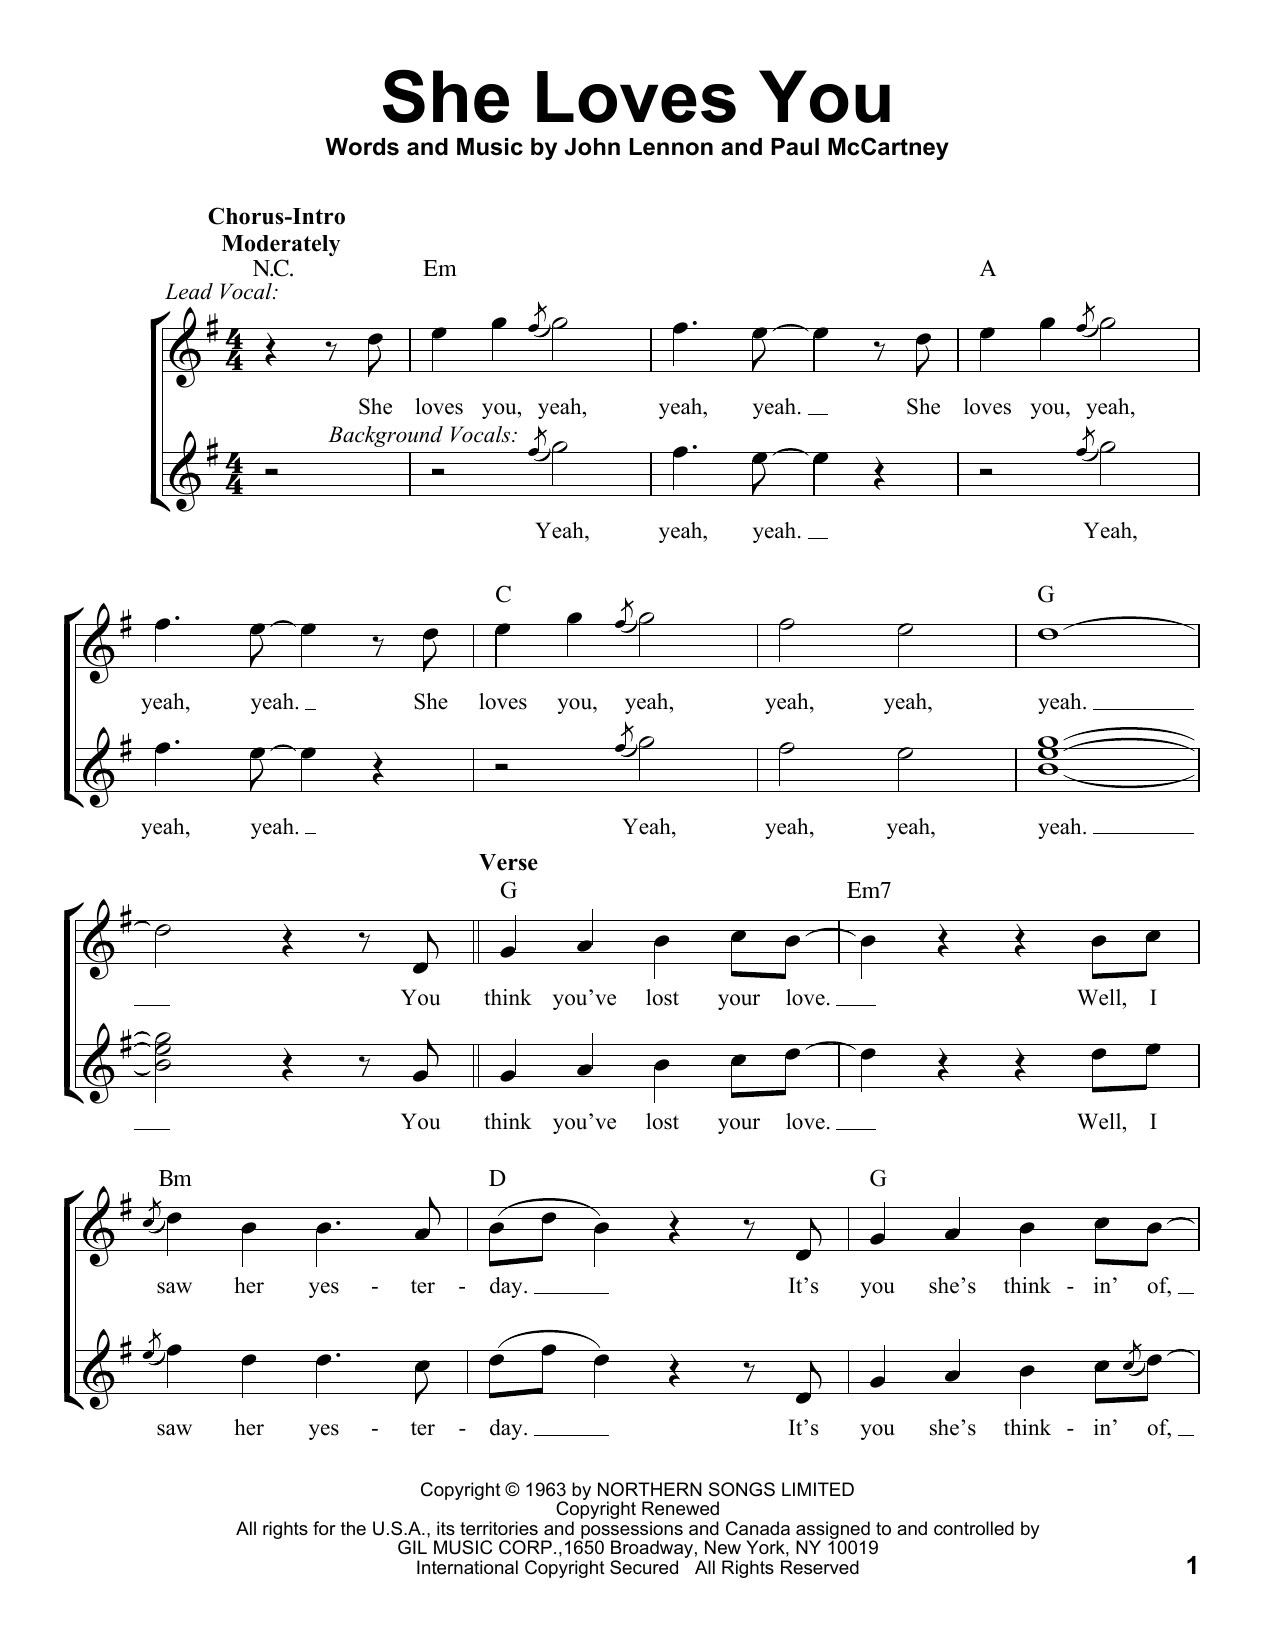 She Loves You Pro Vocal Print Sheet Music Now